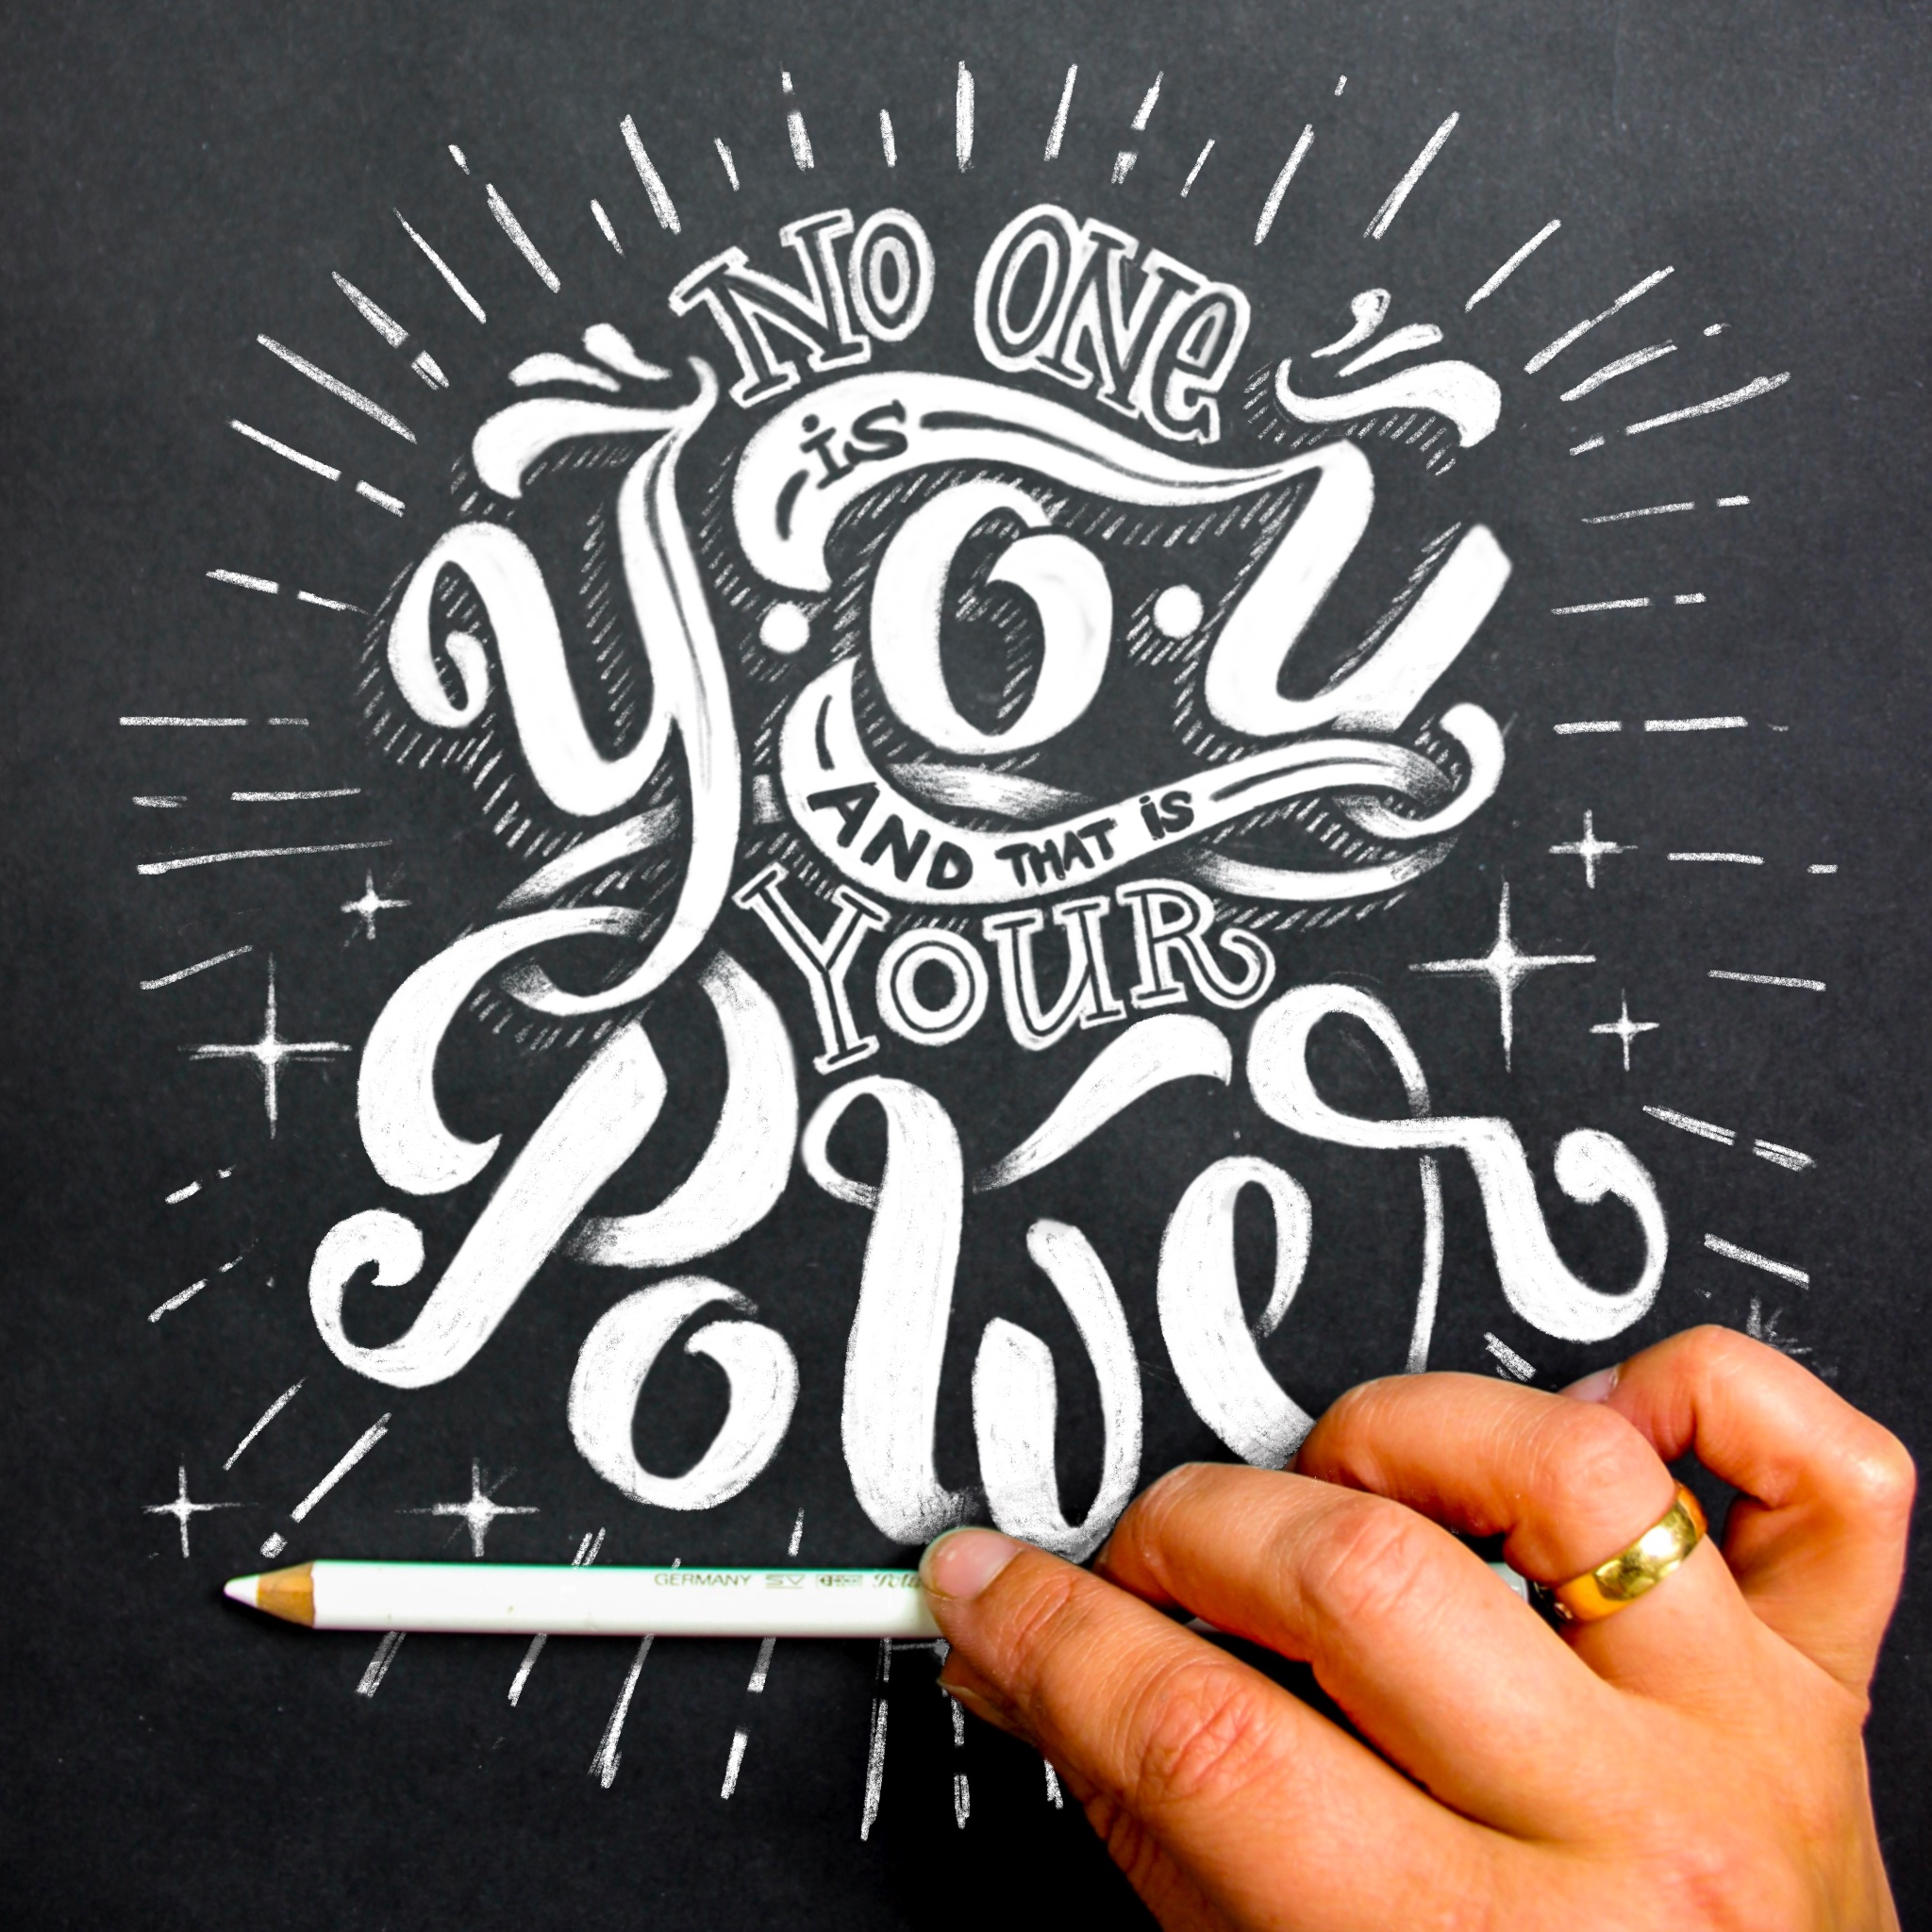 emma mendel n zone is you lettering hand lettering